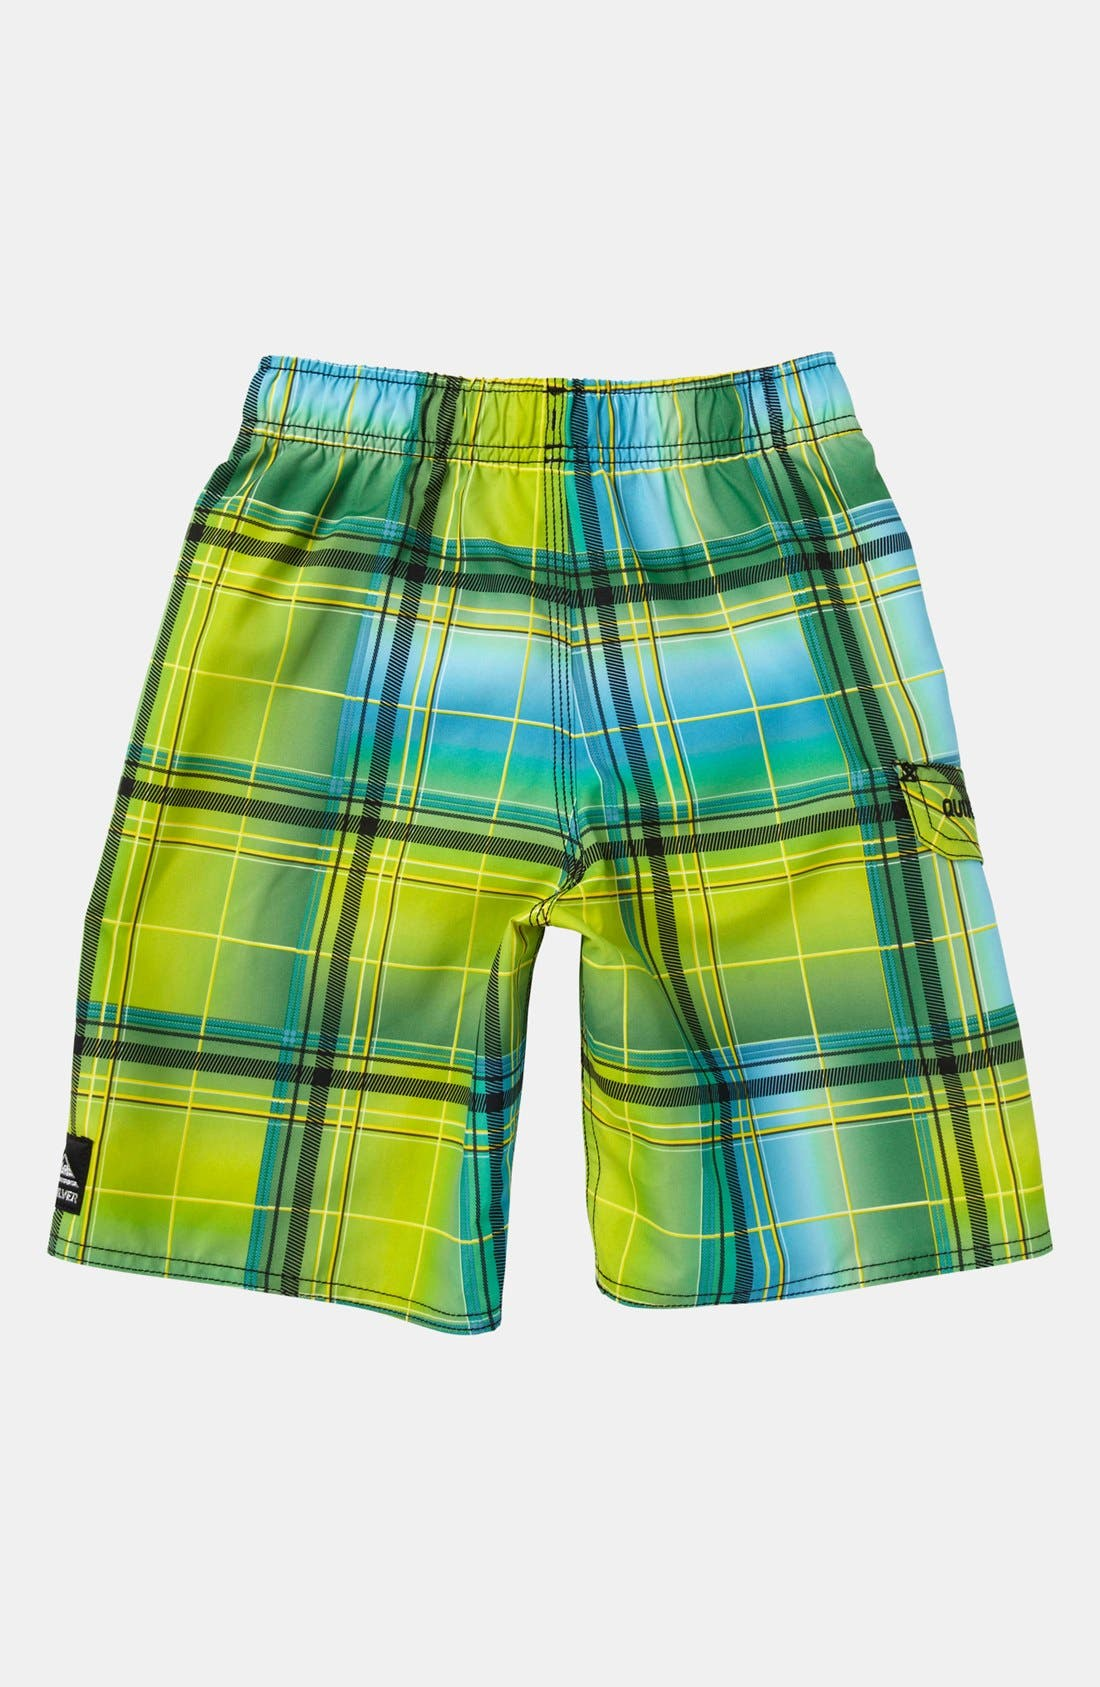 Alternate Image 2  - Quiksilver 'Tronic' Board Shorts (Toddler Boys)